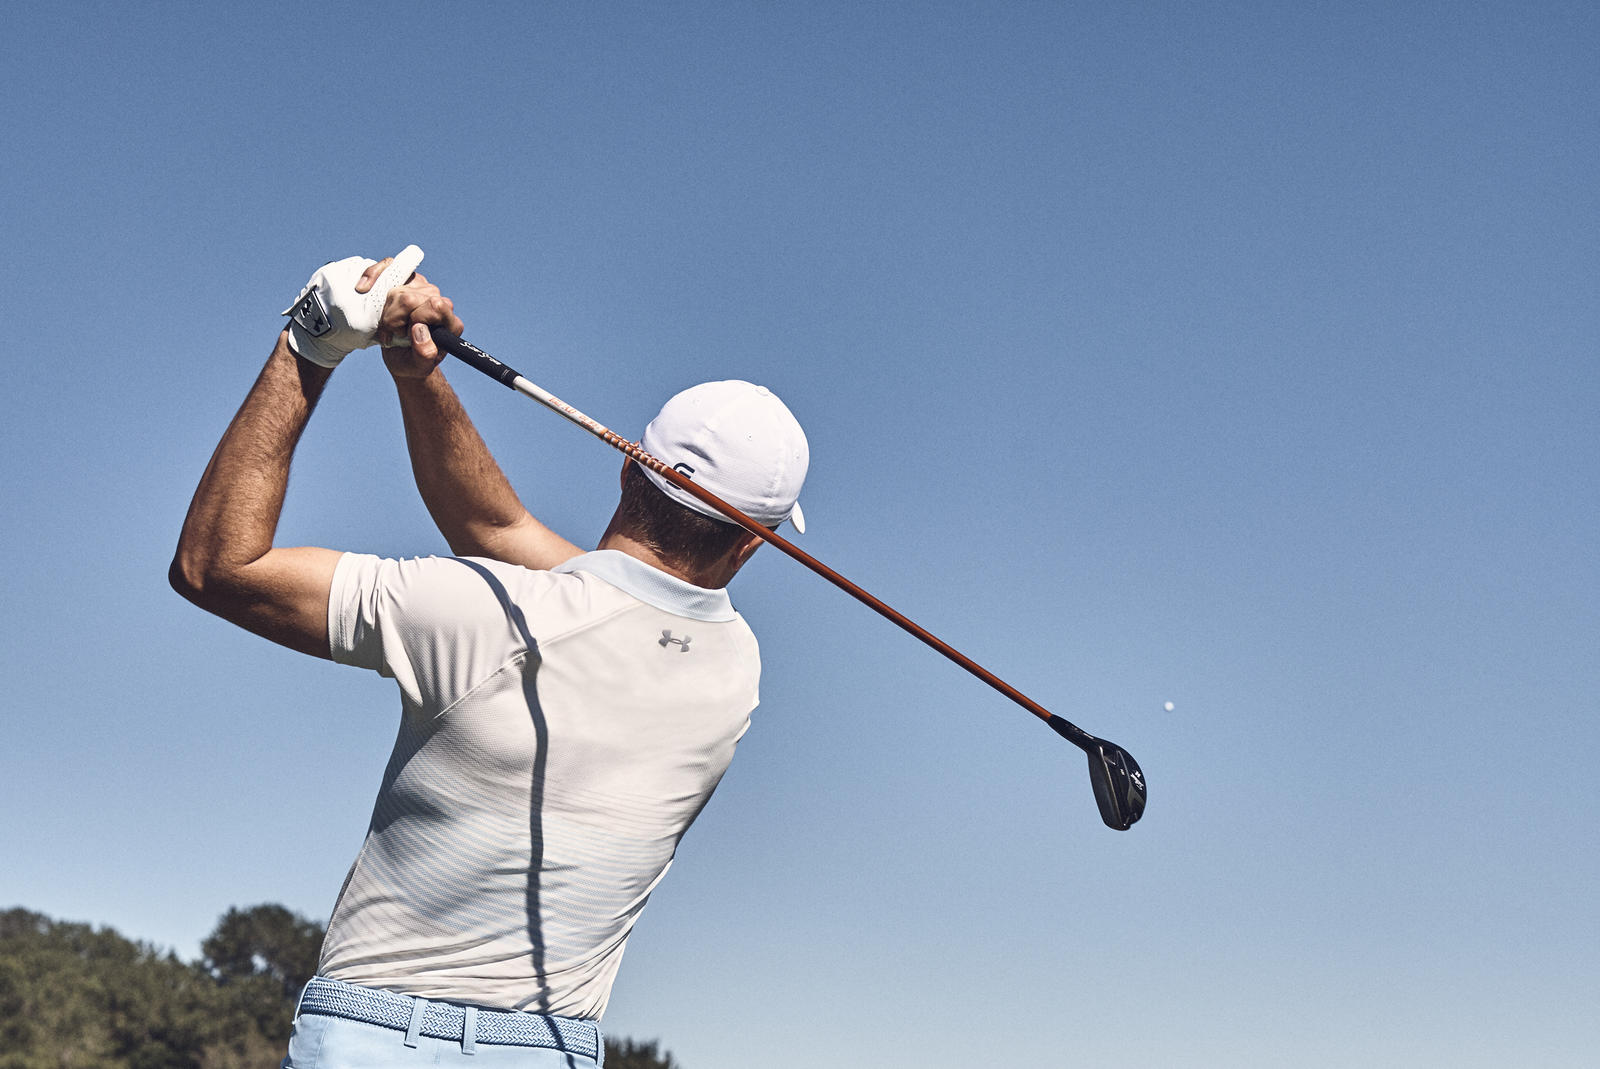 0aacb1fa3d1b Following an impressive showing at the 2019 PGA Championship on Long  Island, Jordan Spieth's focus will be shifting to the other coast, as he  looks to ...